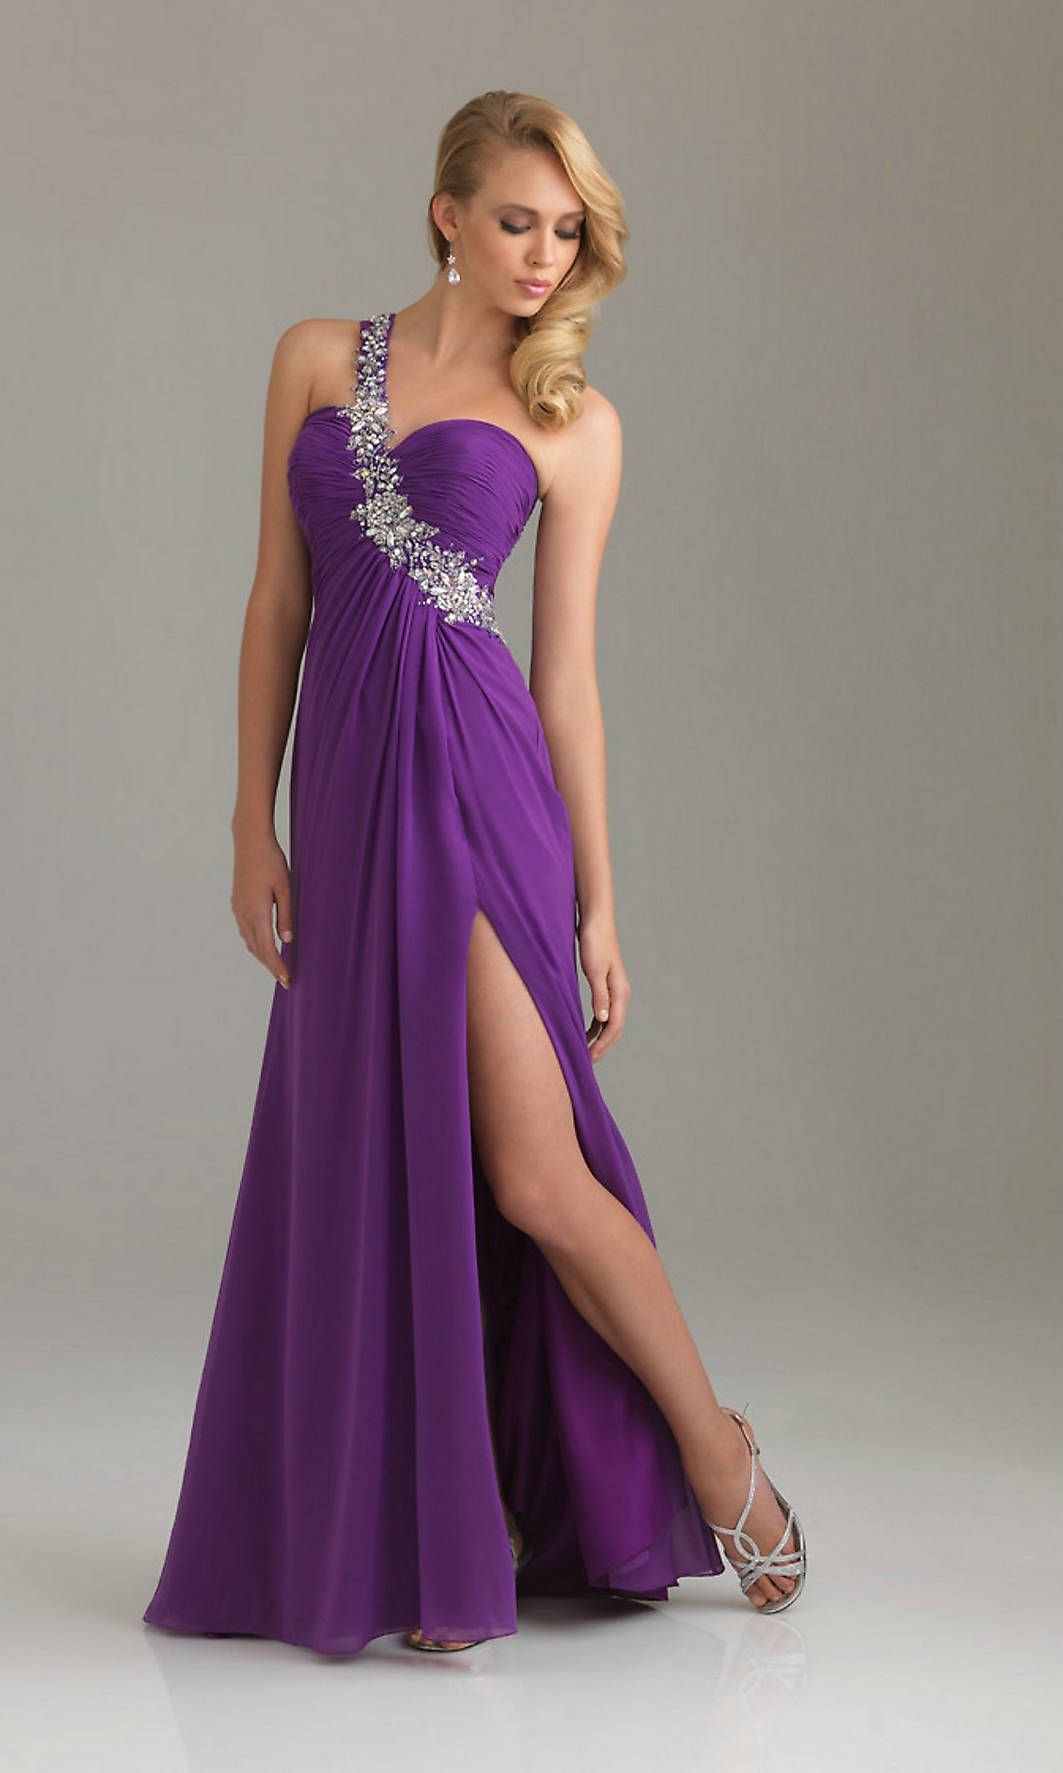 Long purple prom dress dress journal products pinterest prom